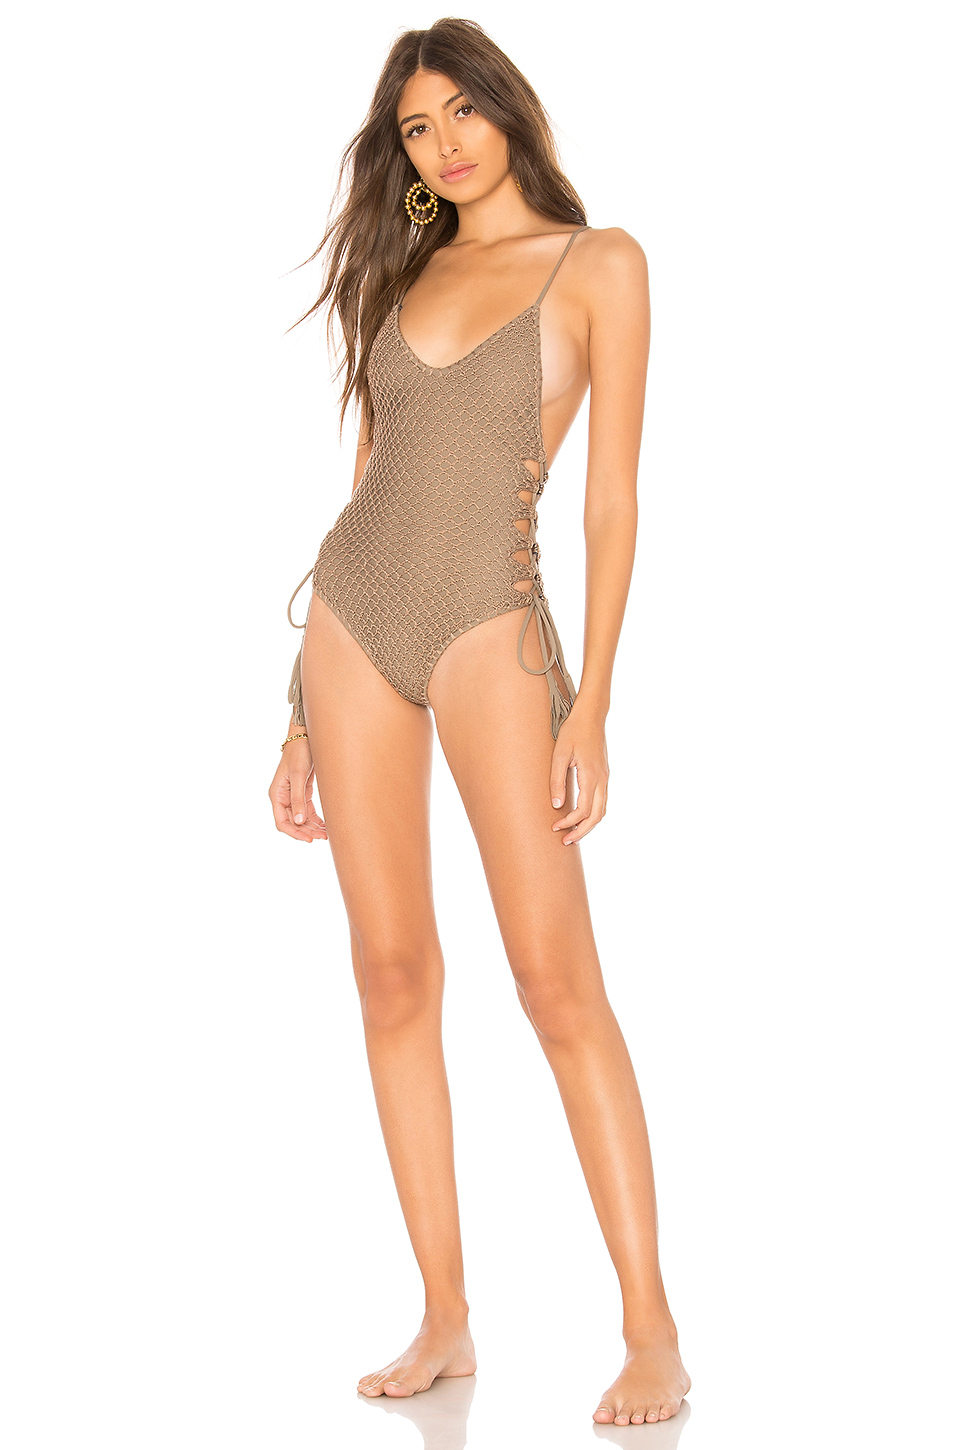 Buy Original Acacia Swimwear Florence Crochet One Piece At Indonesia